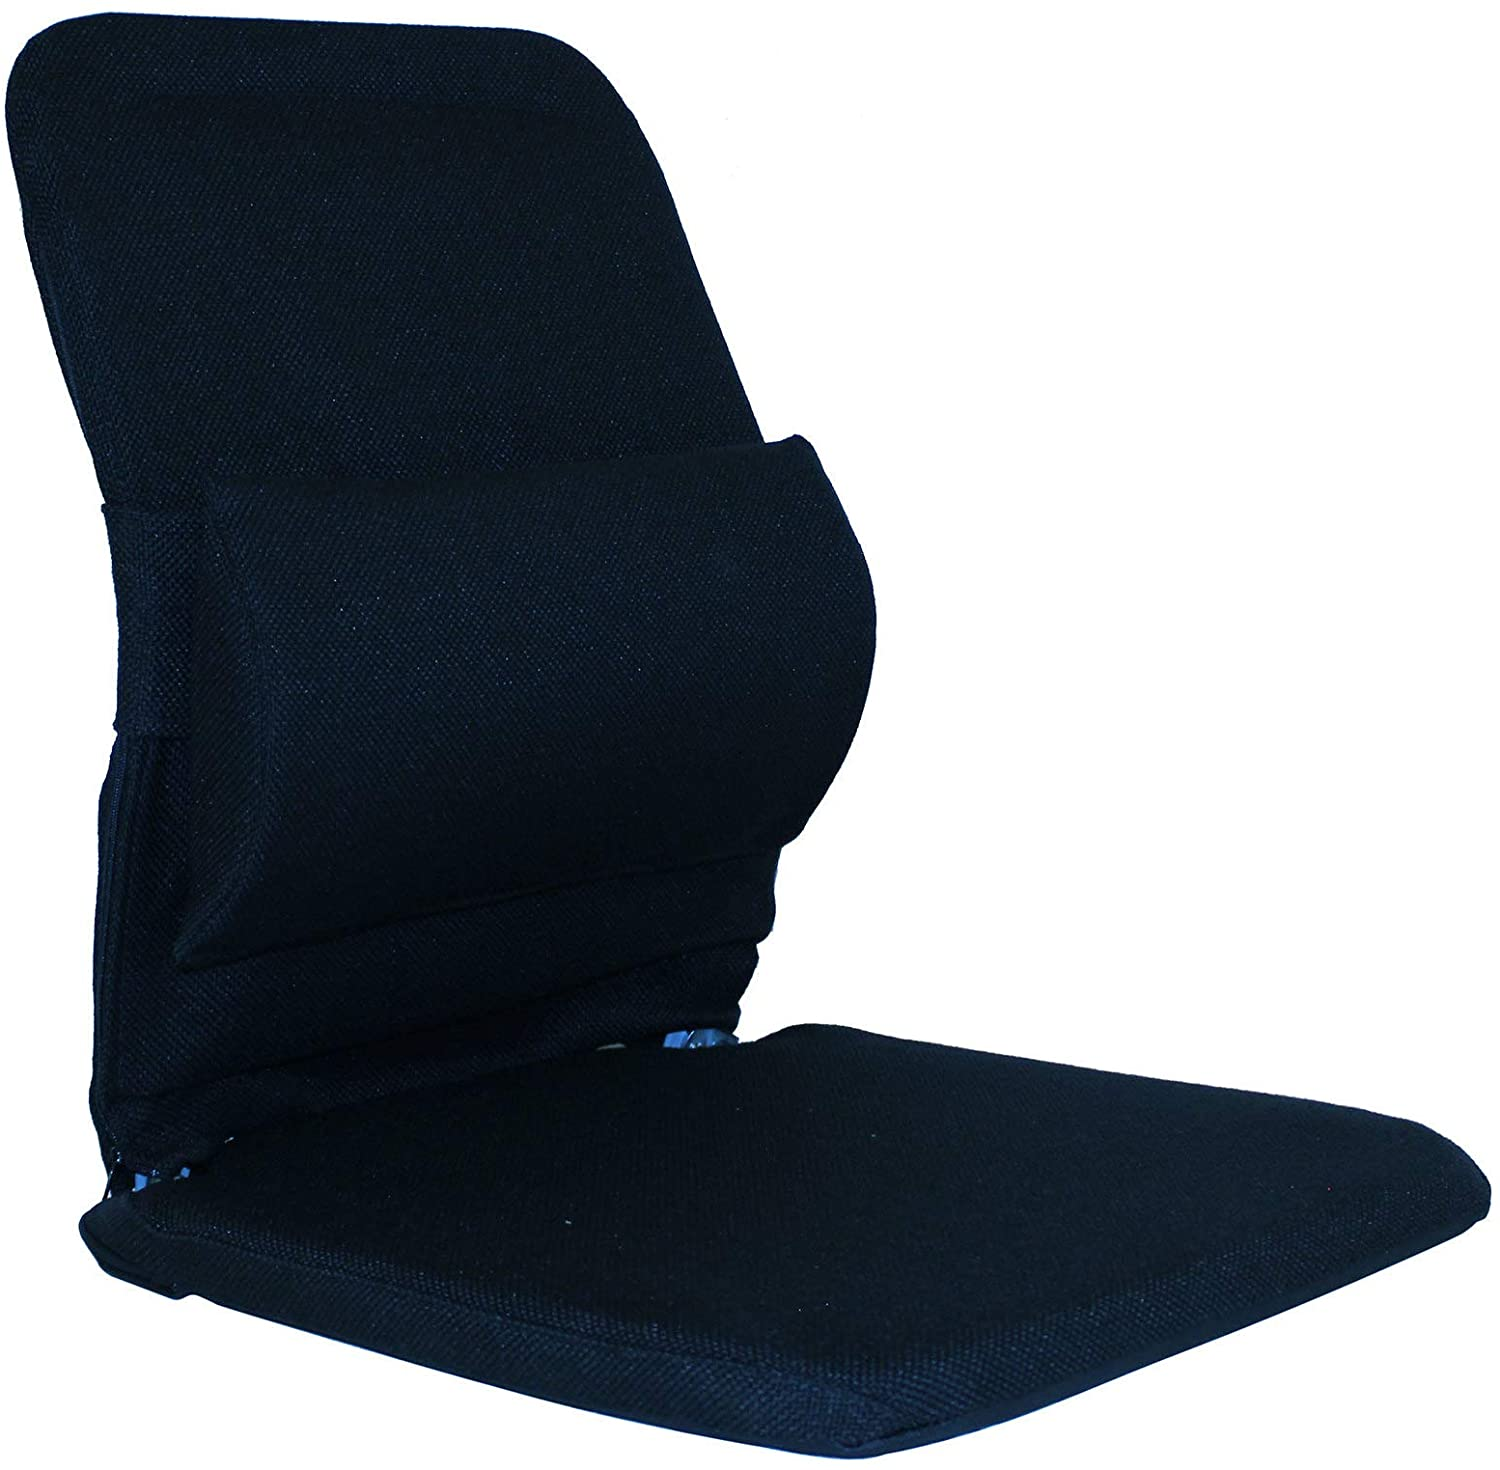 Q QUALITY BRAND COMPANY McCarty's Q-BRC-BLU 19 in. Wide Deluxe Sacro-Ease Ergonomic Seat Support 16x19x19 in. Blue Color